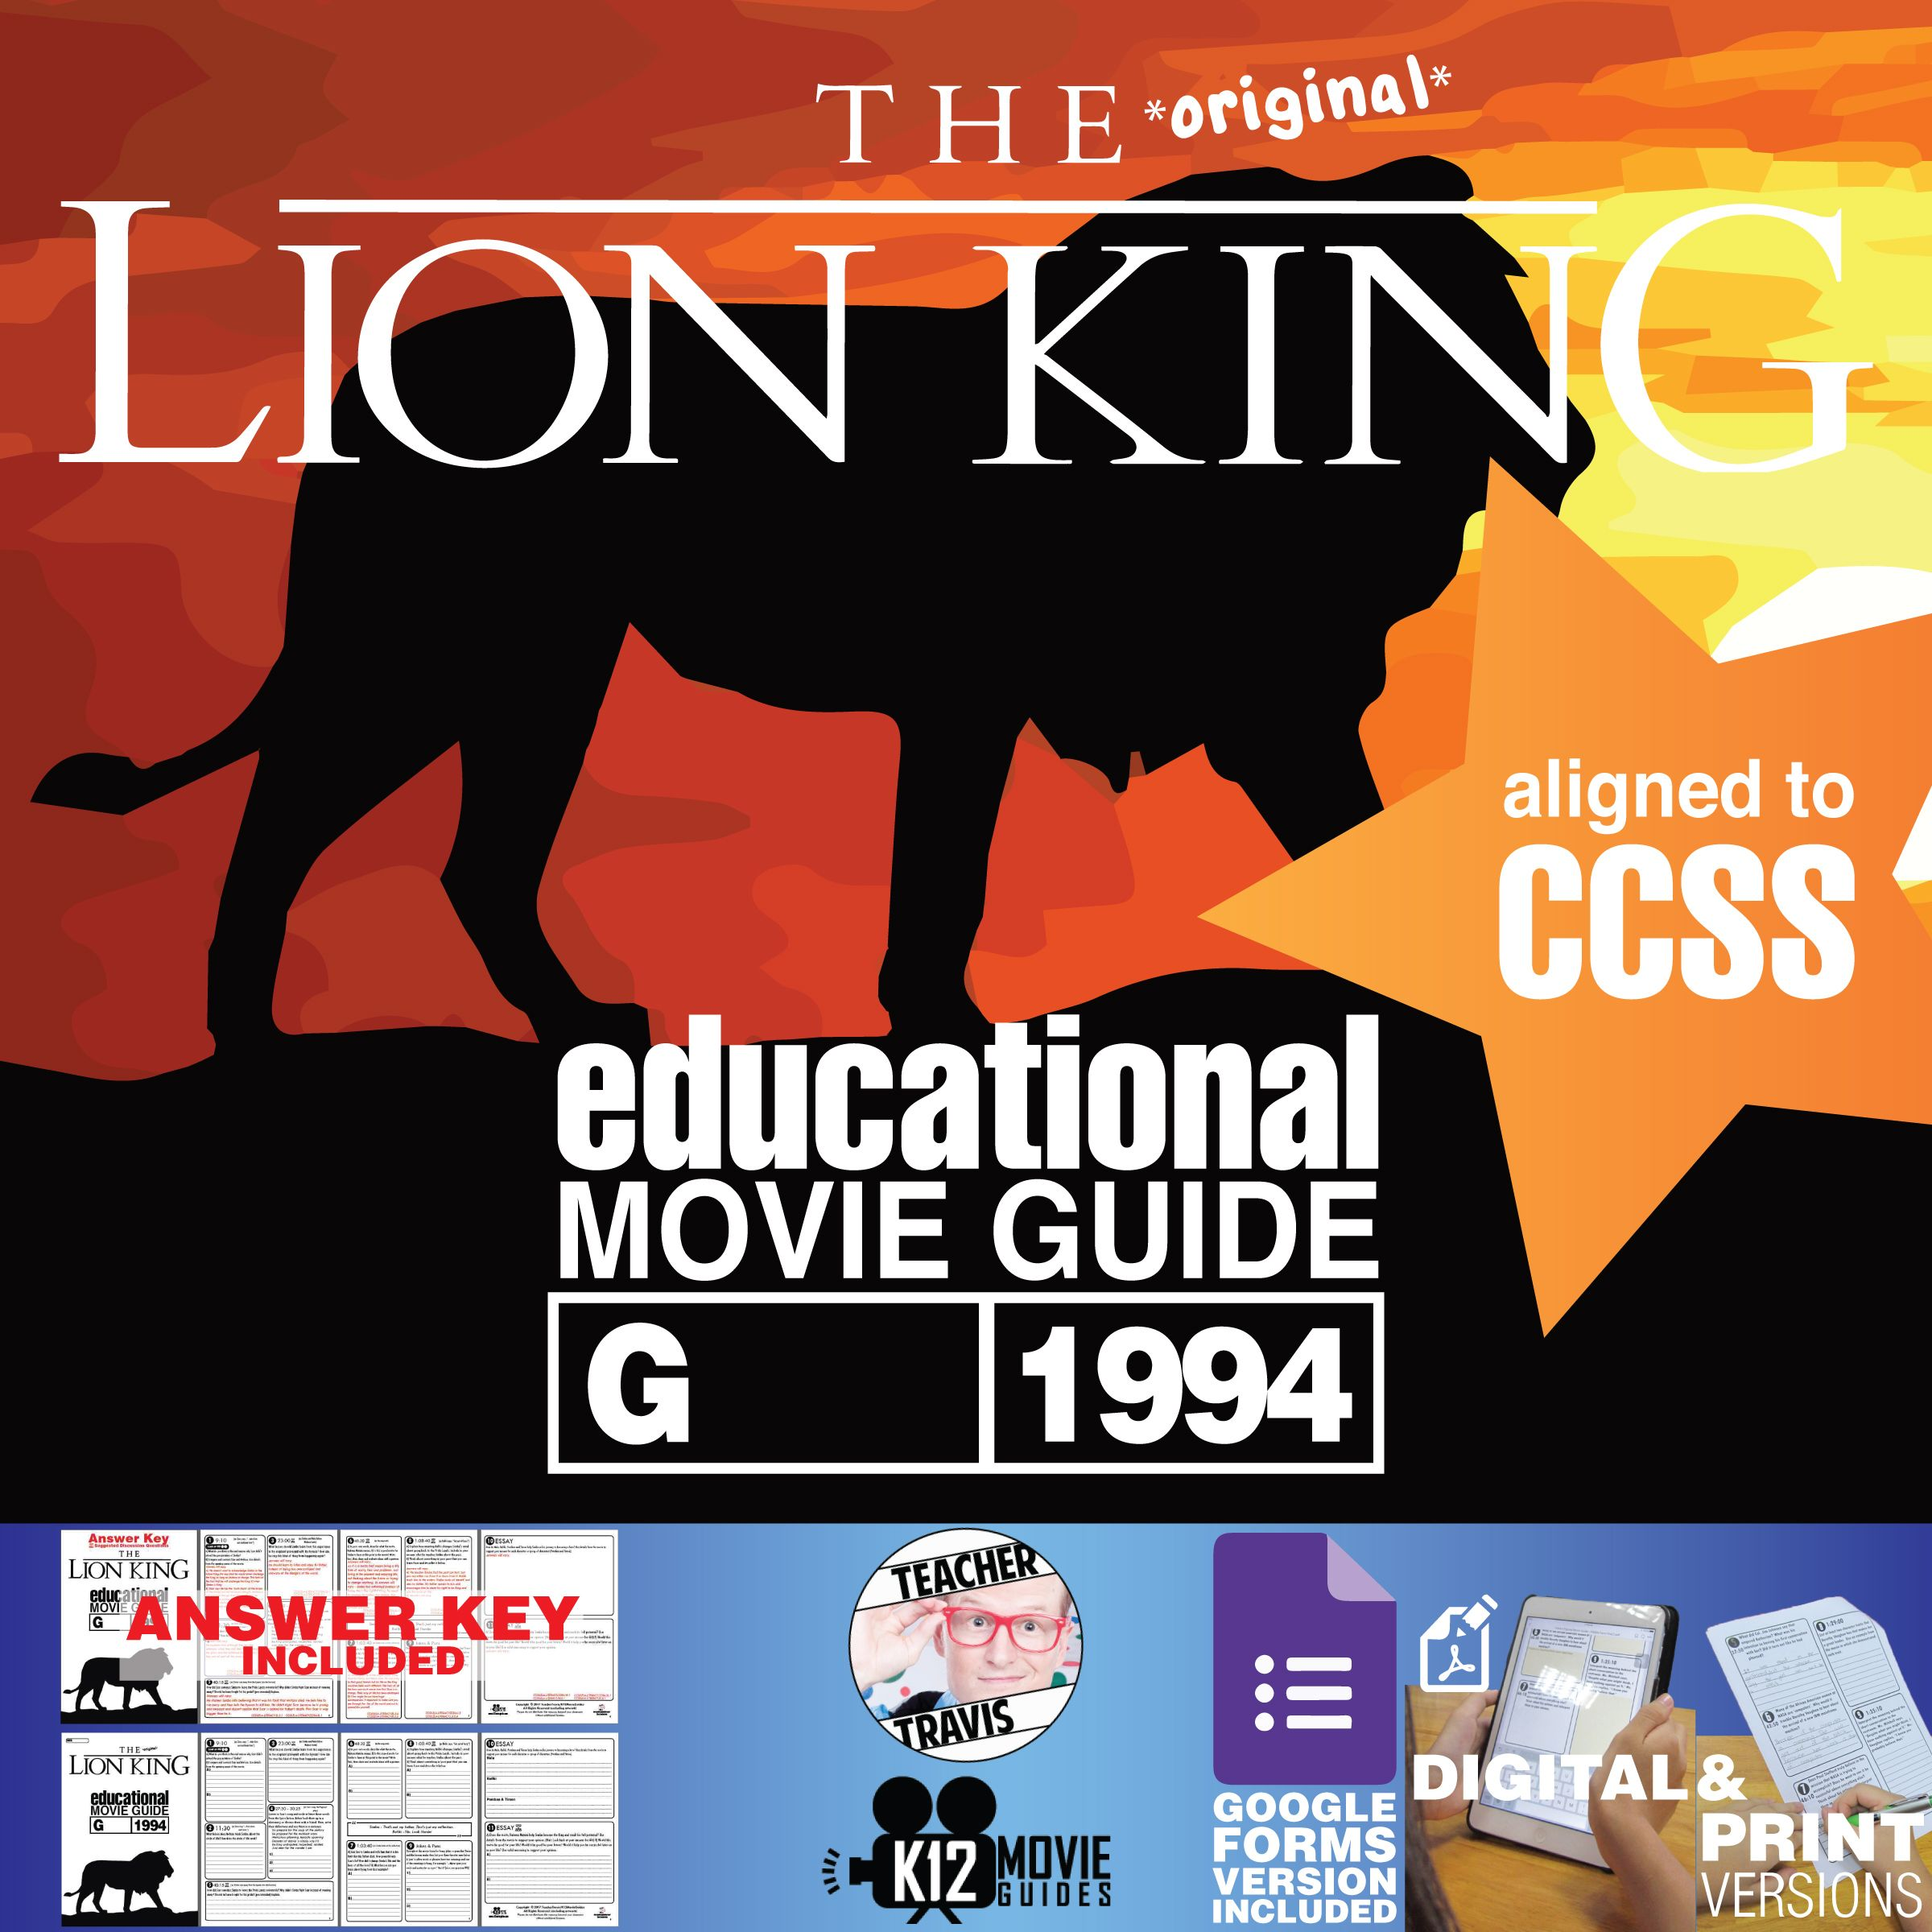 The Lion King Movie Guide